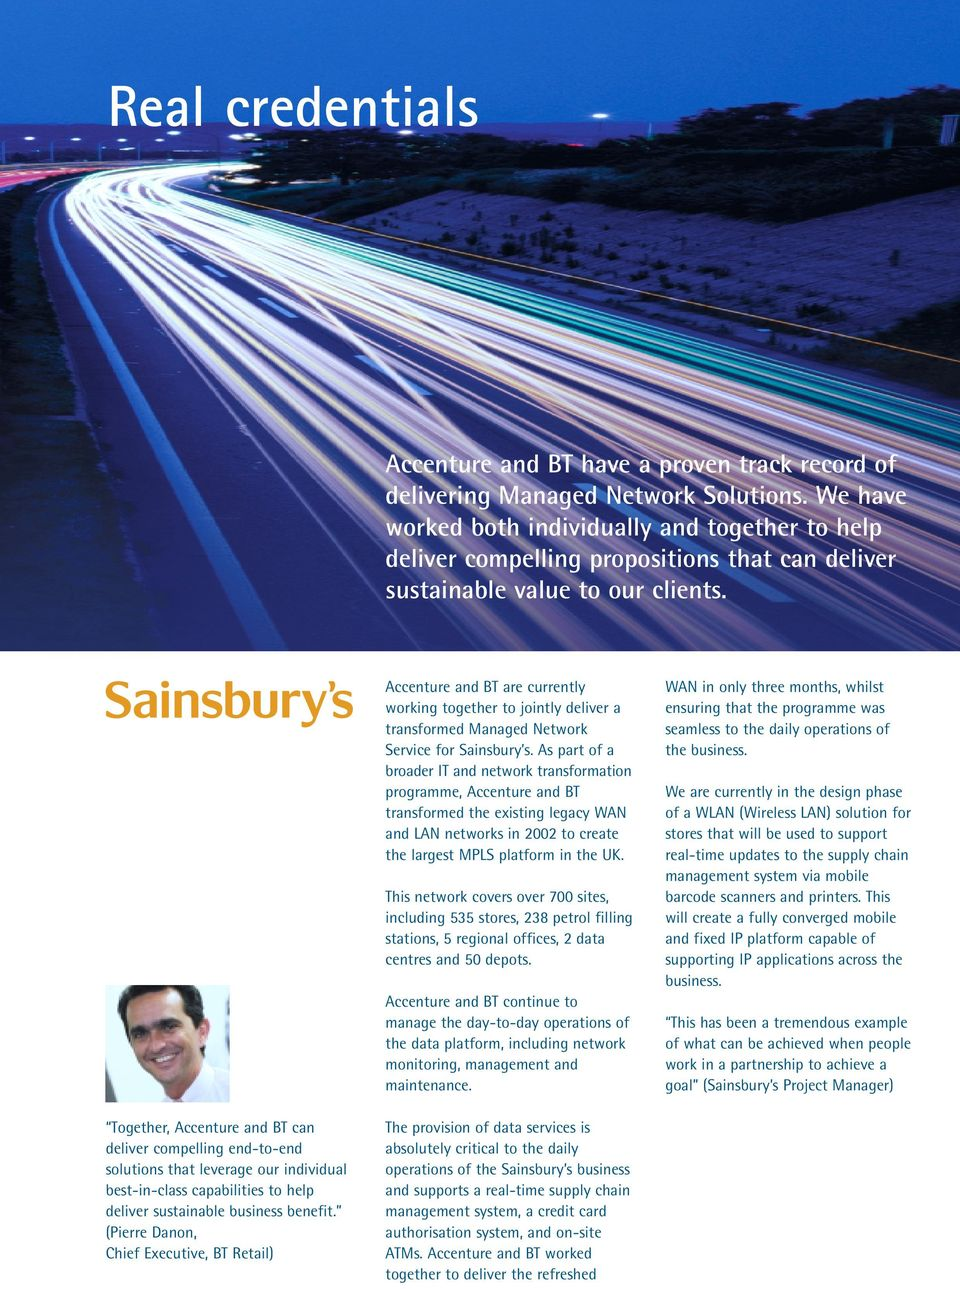 Accenture and BT are currently working together to jointly deliver a transformed Managed Network Service for Sainsbury s.